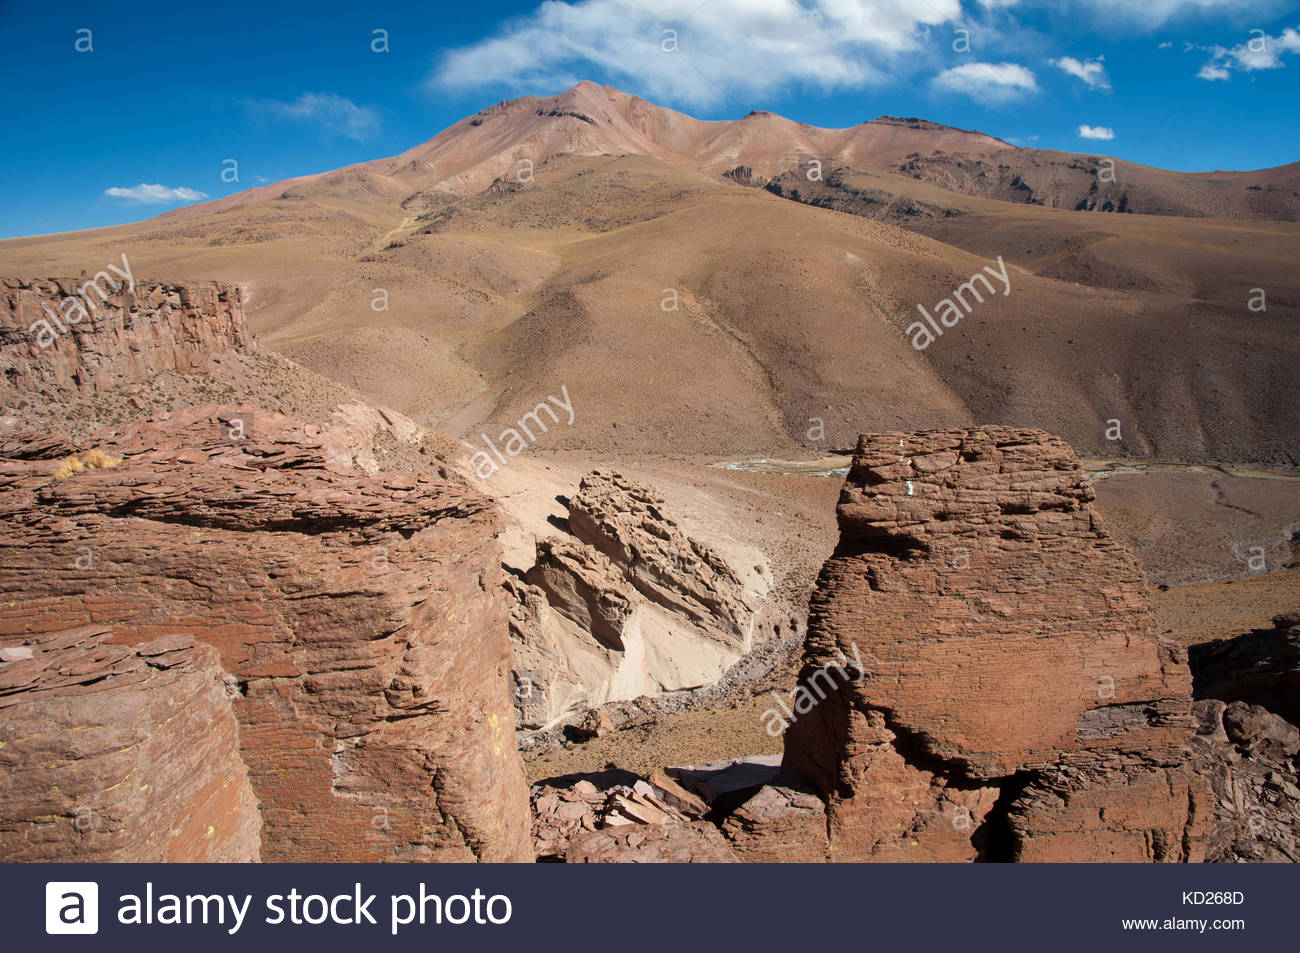 rock formations at the foot of the uturuncu volcano, south licep, bolivia, south america Stock Photo